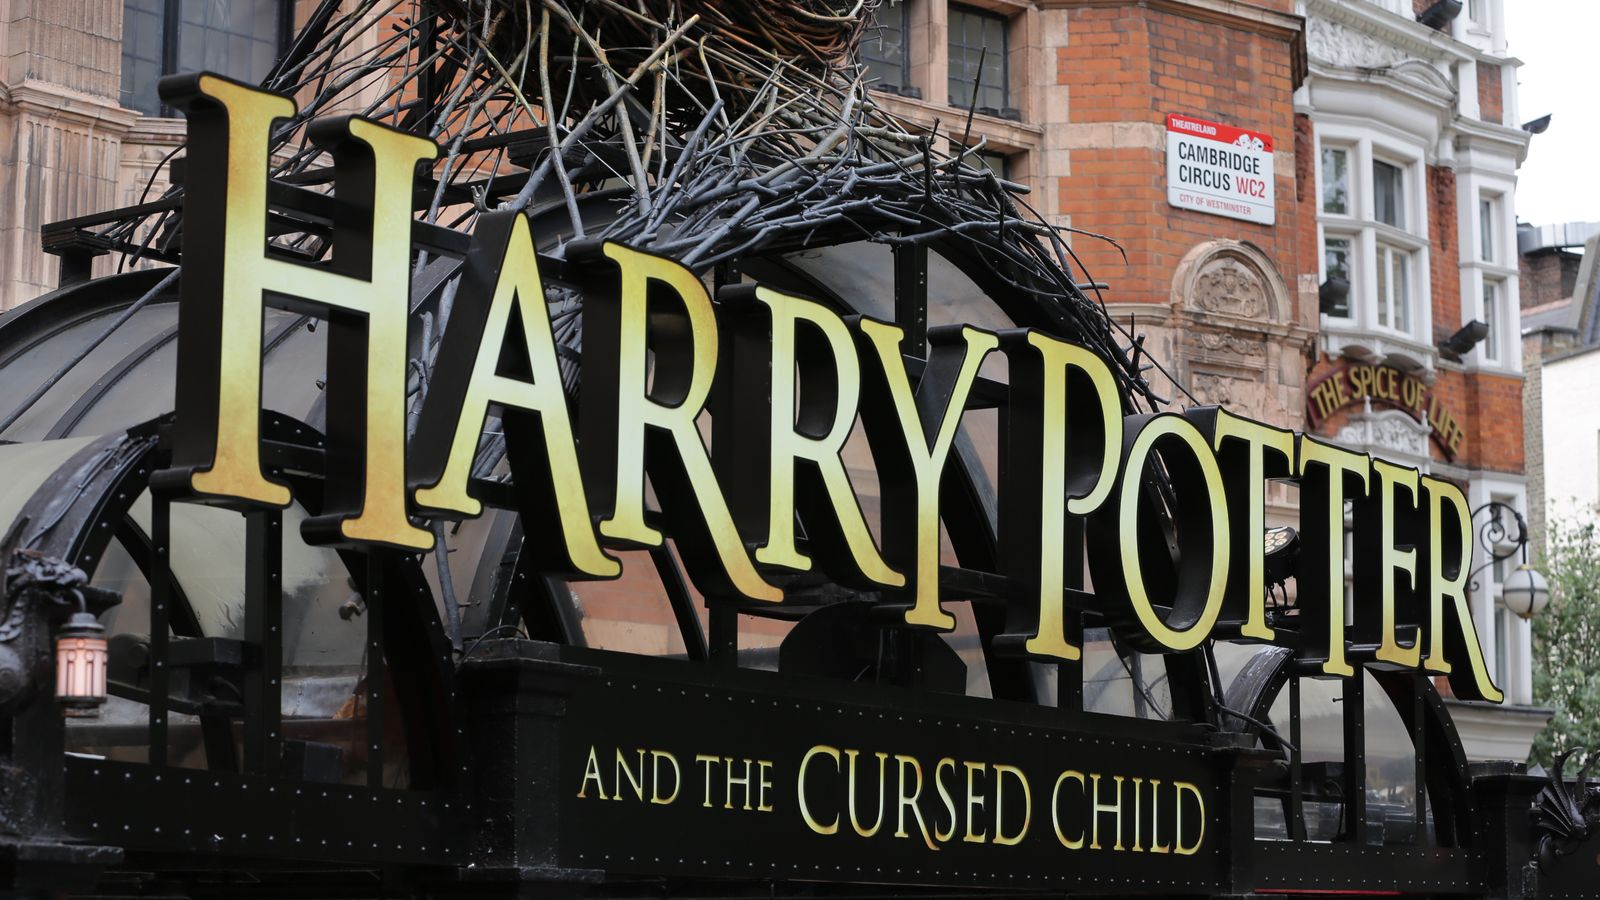 Harry Potter and the Cursed Child was premiered at the Palace Theatre, in London's West End